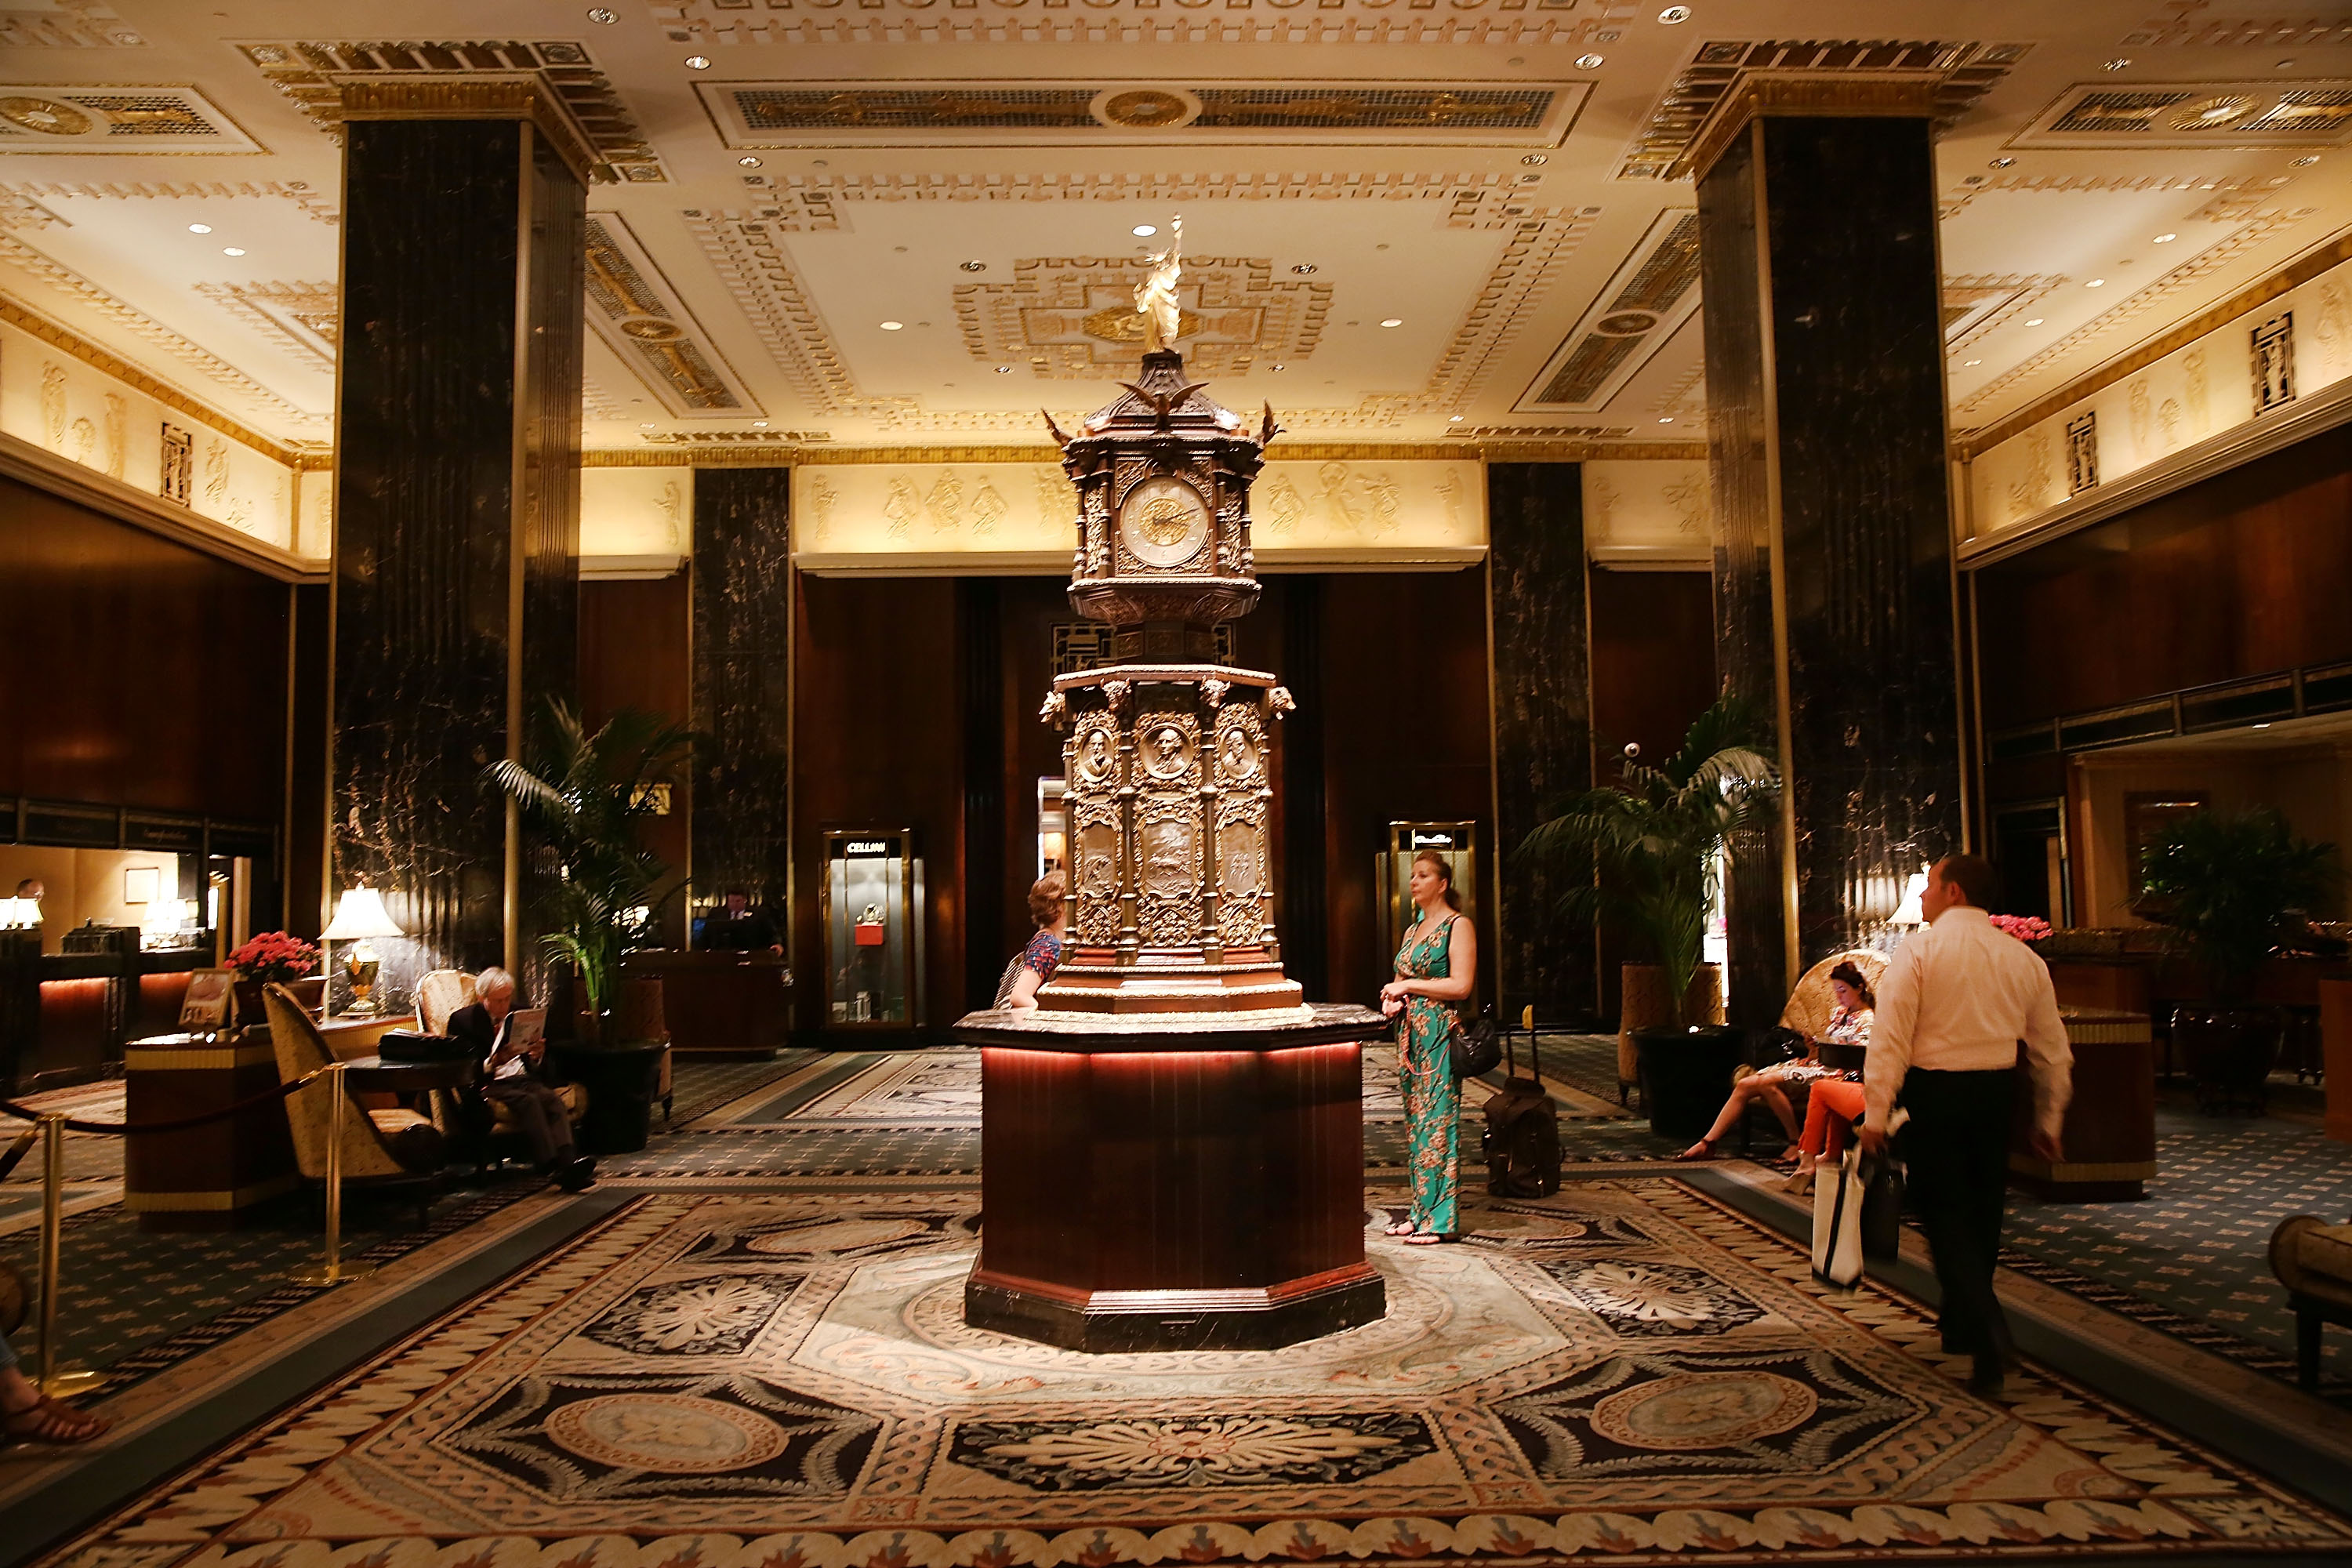 Waldorf Astoria's iconic Art Deco interiors become an NYC interior landmark